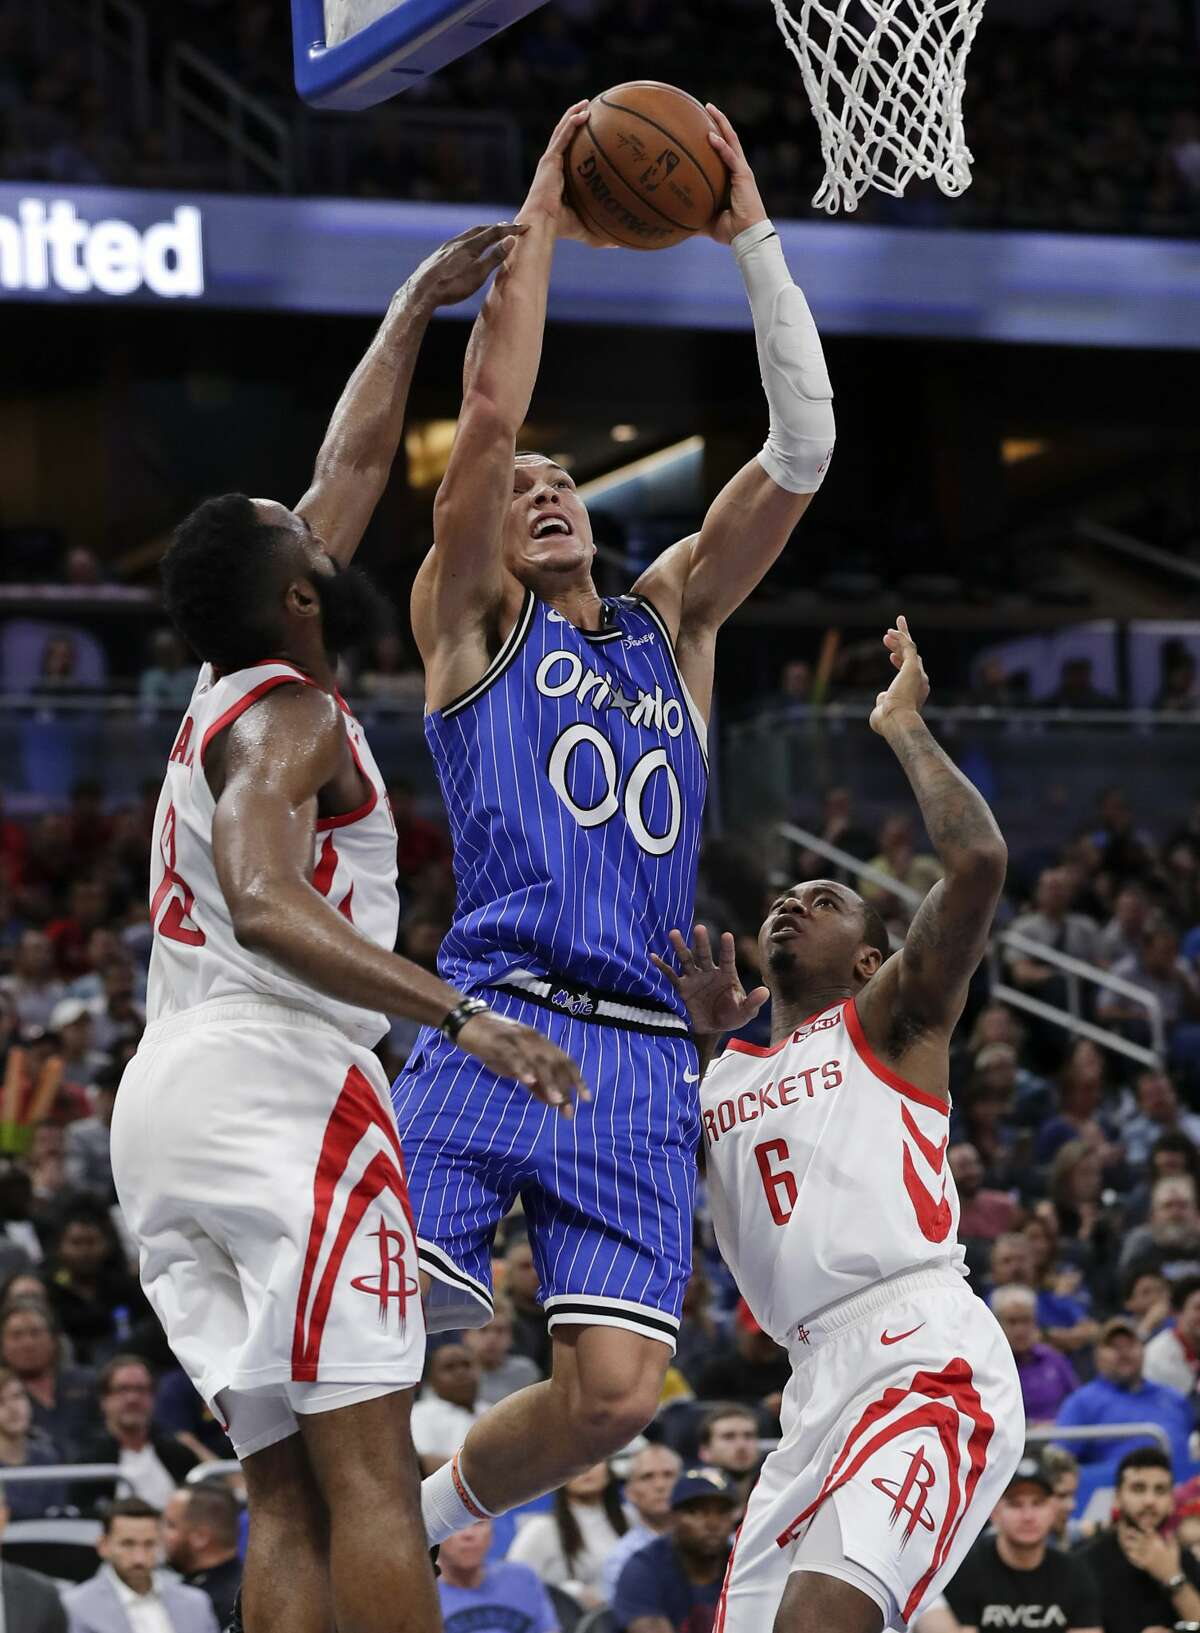 Orlando Magic's Aaron Gordon (00) shoots as he gets between Houston Rockets' James Harden, left, and Gary Clark (6) during the second half of an NBA basketball game, Sunday, Jan. 13, 2019, in Orlando, Fla. (AP Photo/John Raoux)